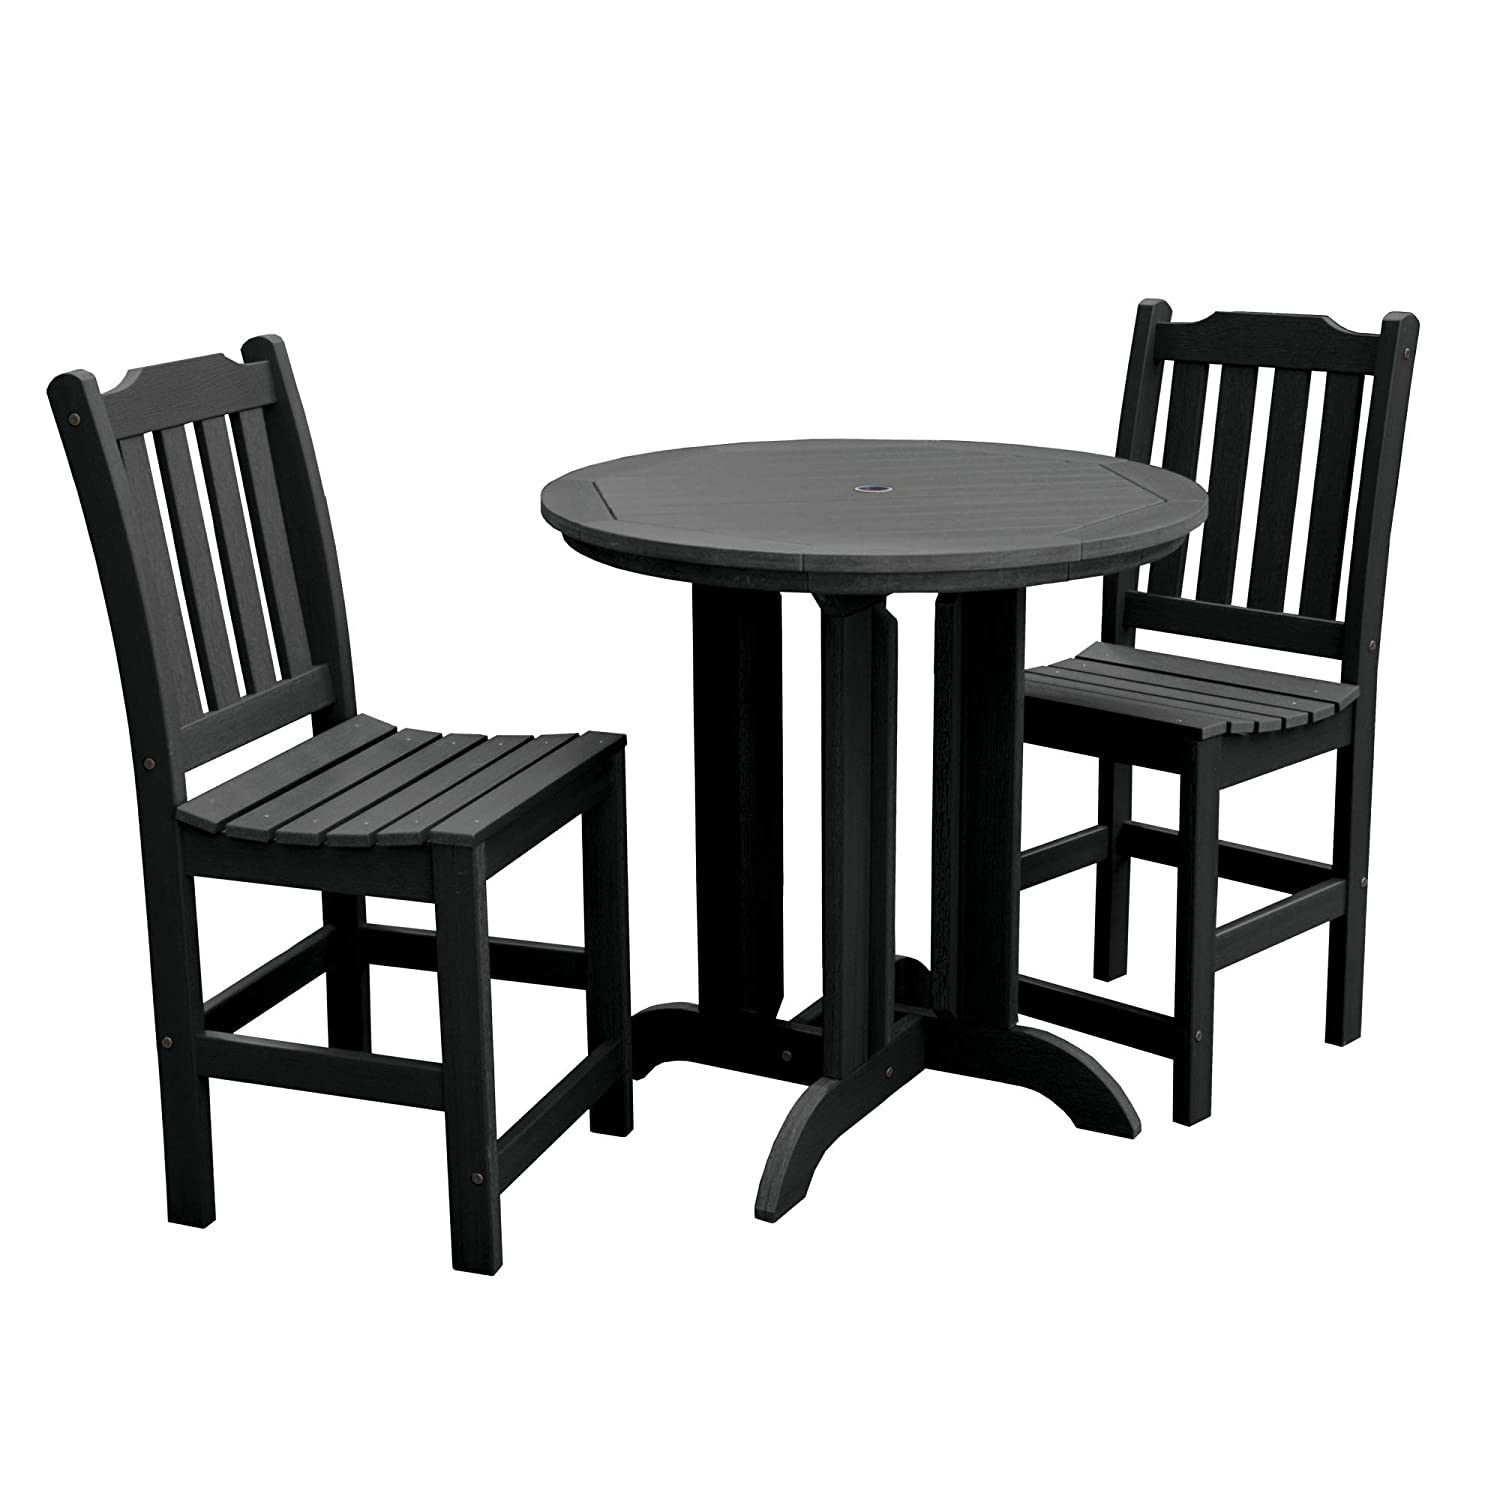 Highwood 3 Piece Lehigh Round Counter Height Dining Set Black Amazon In Garden Outdoors